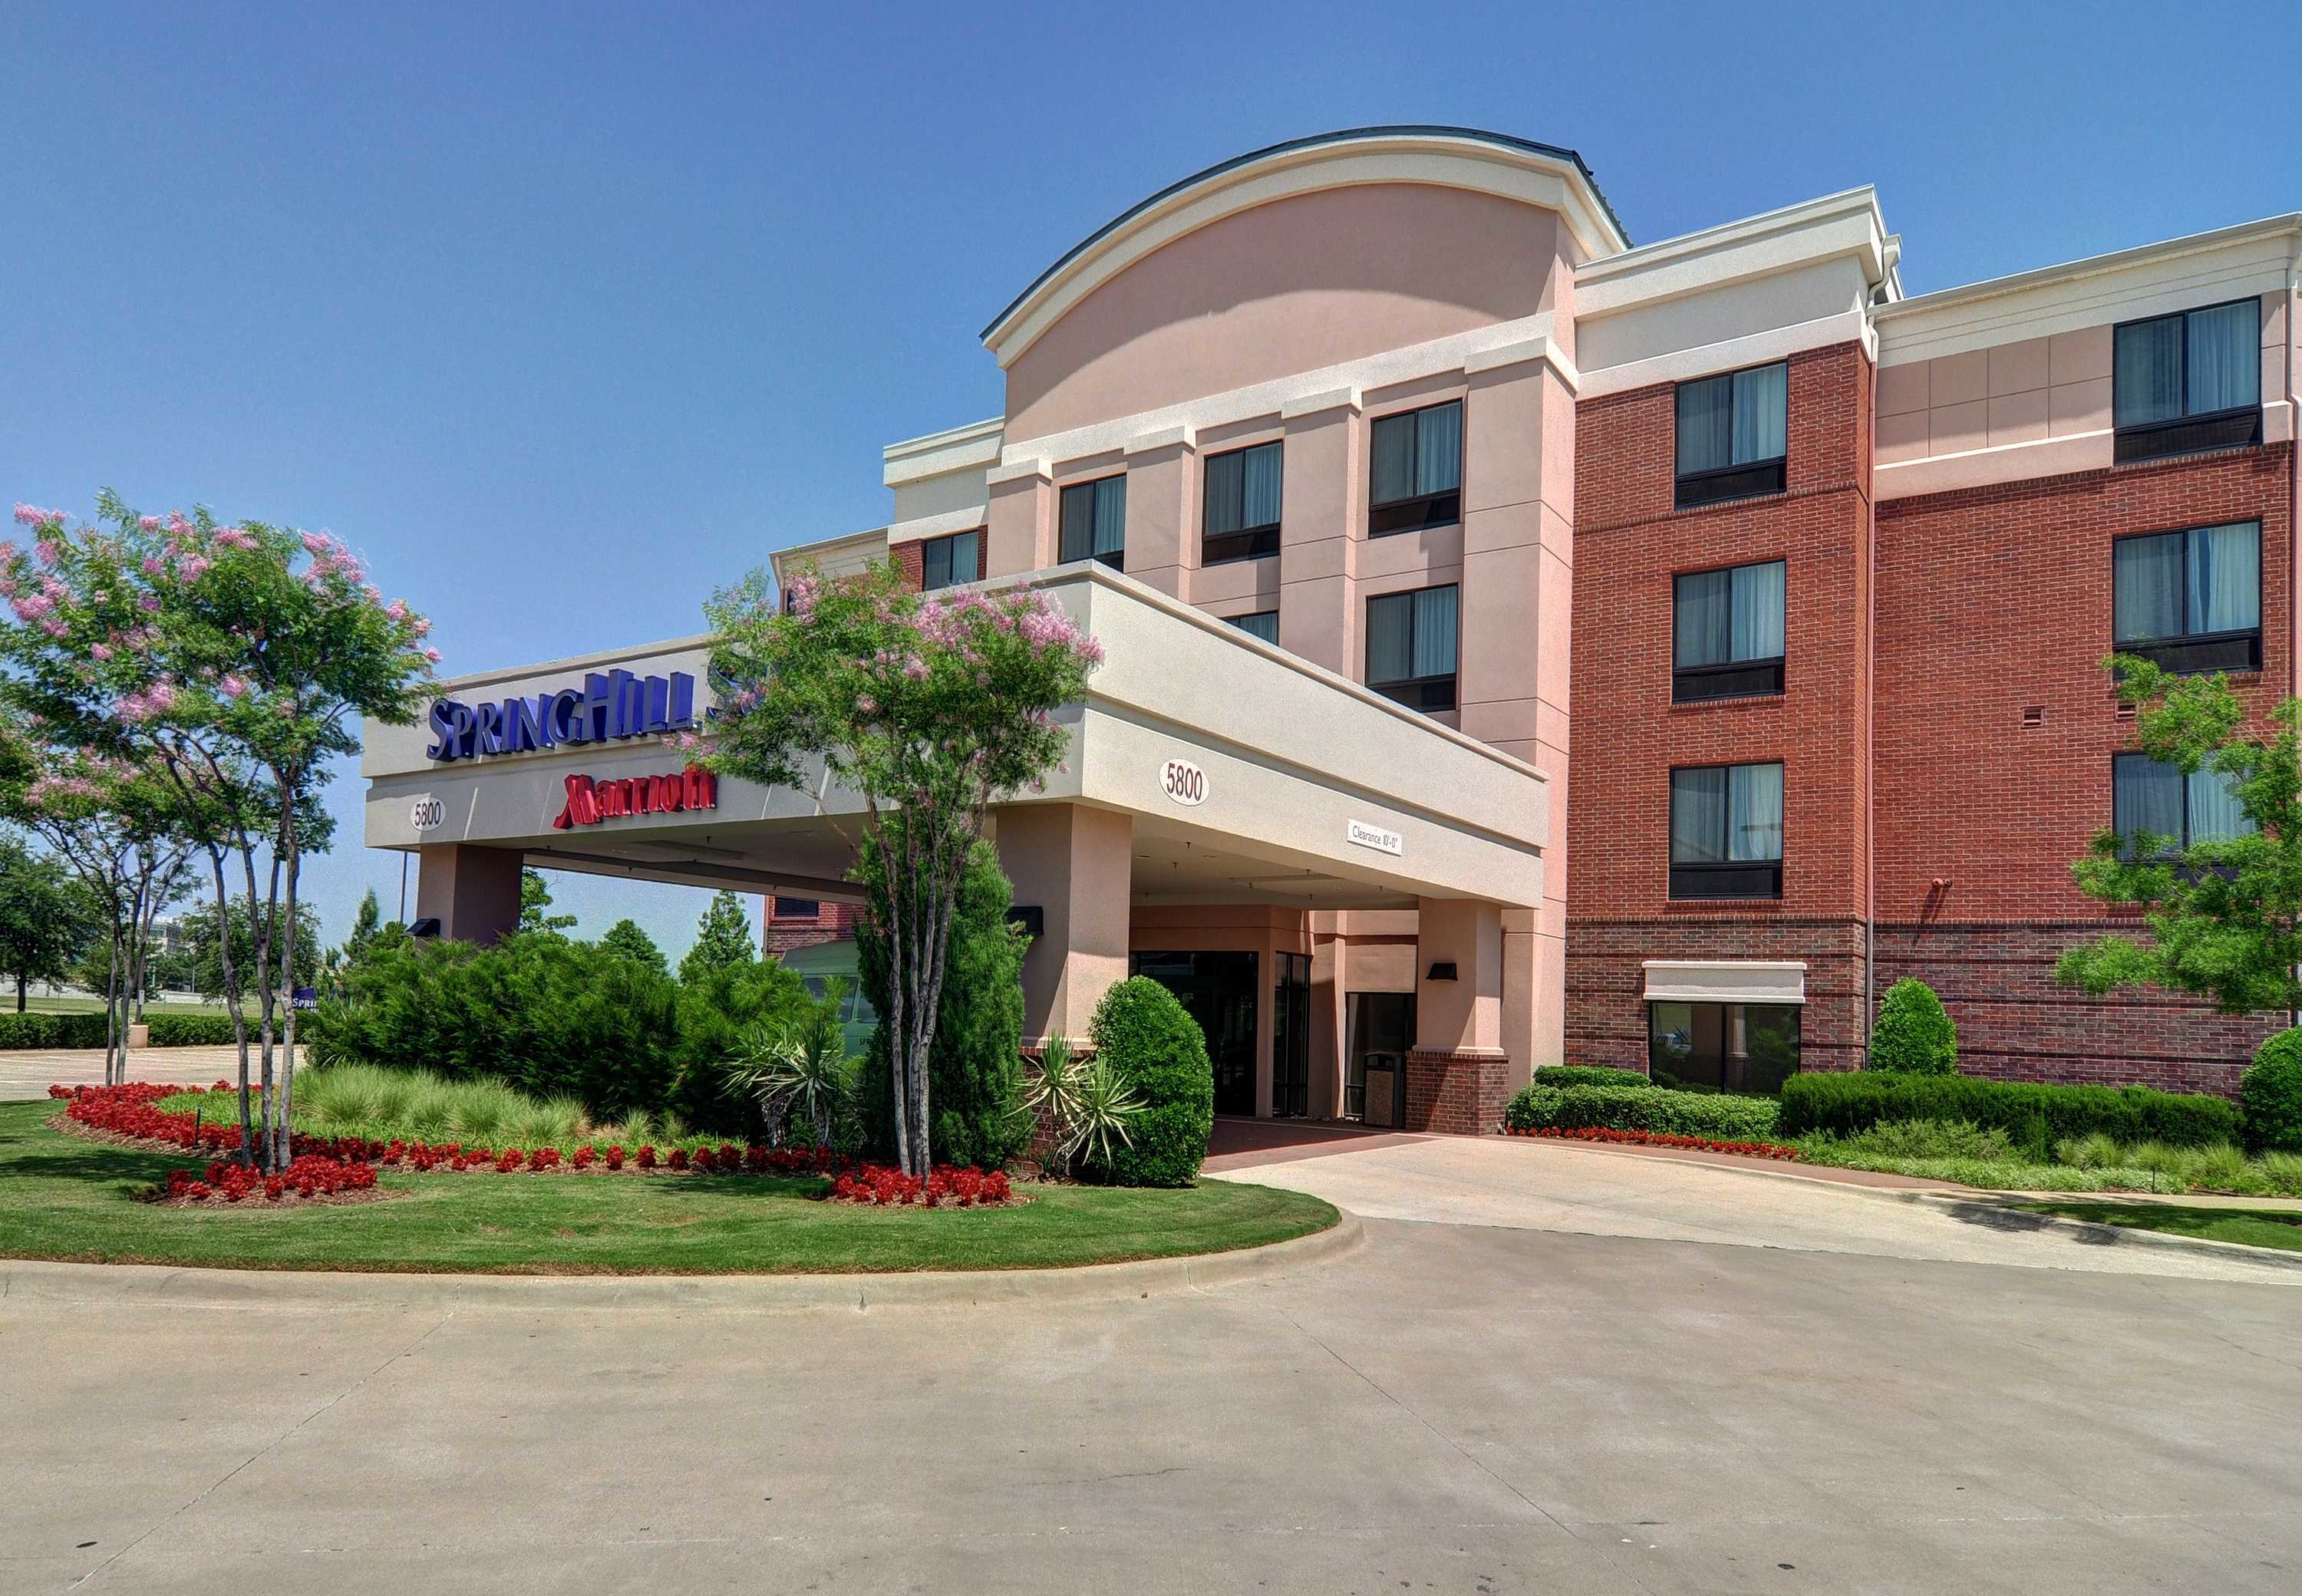 Springhill suites by marriott dallas dfw airport east las for Irving hotel chicago